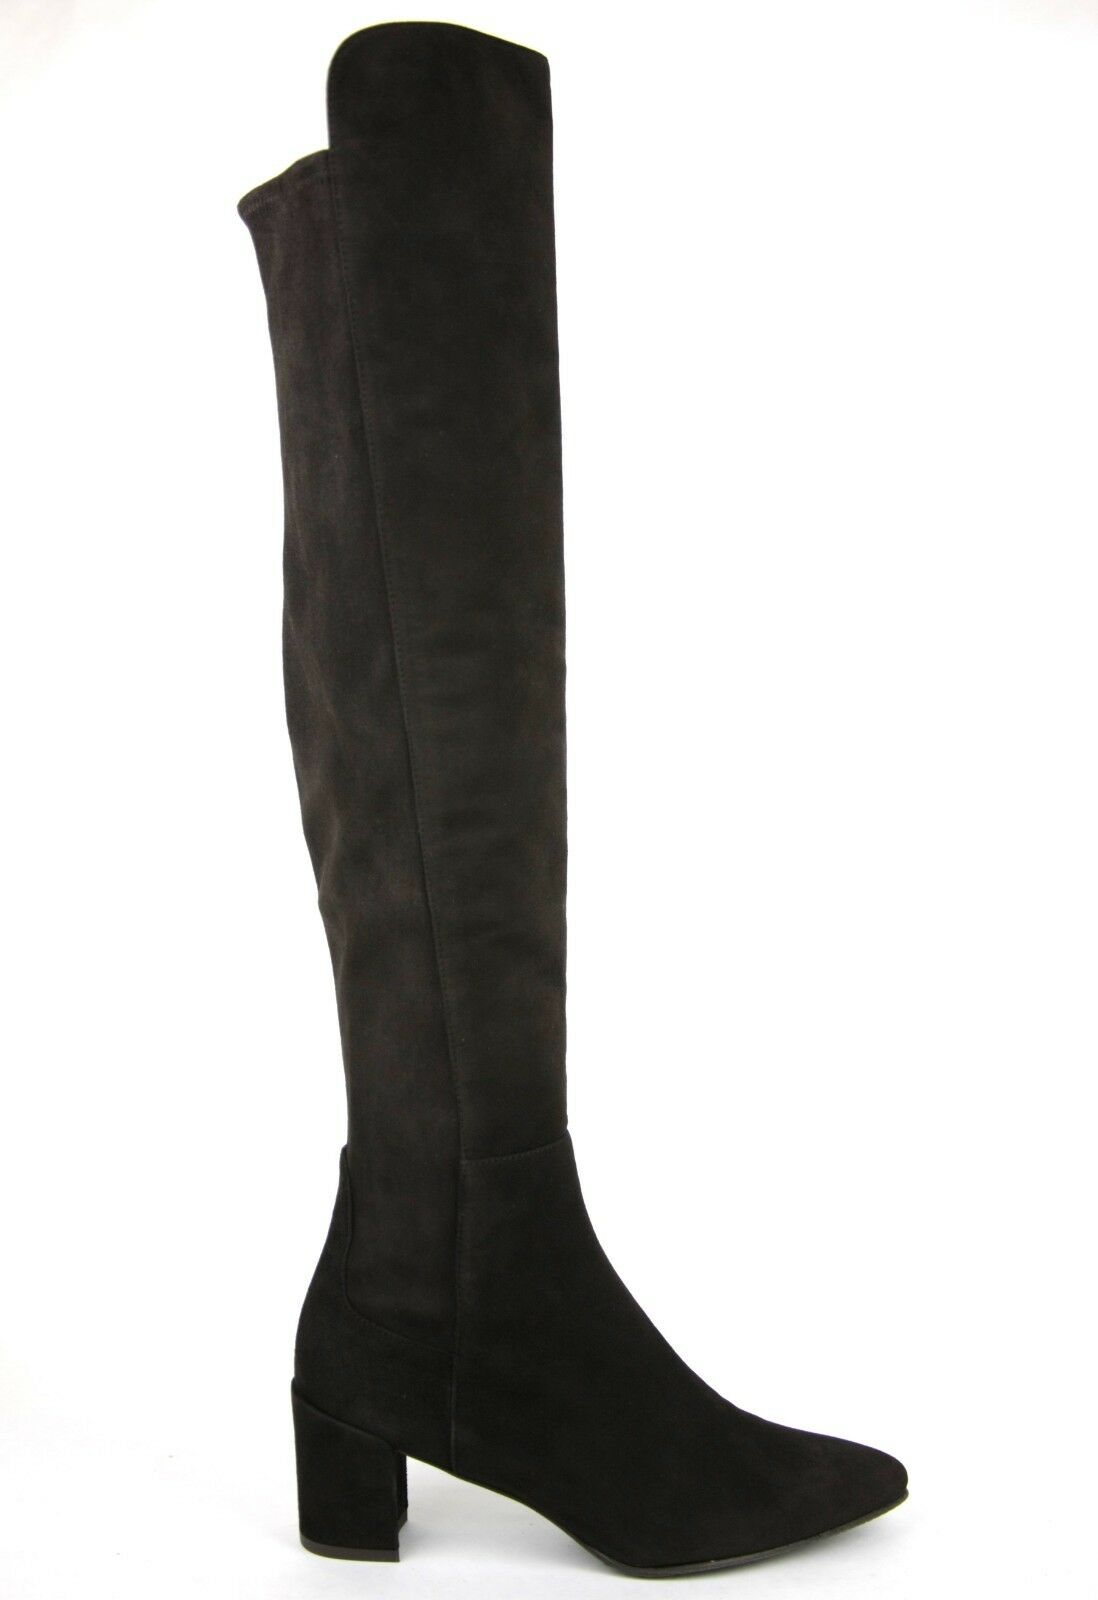 765 New Stuart Weitzman Dark Brown Cola Suede Allwayhunk Over-The-Knee Boot